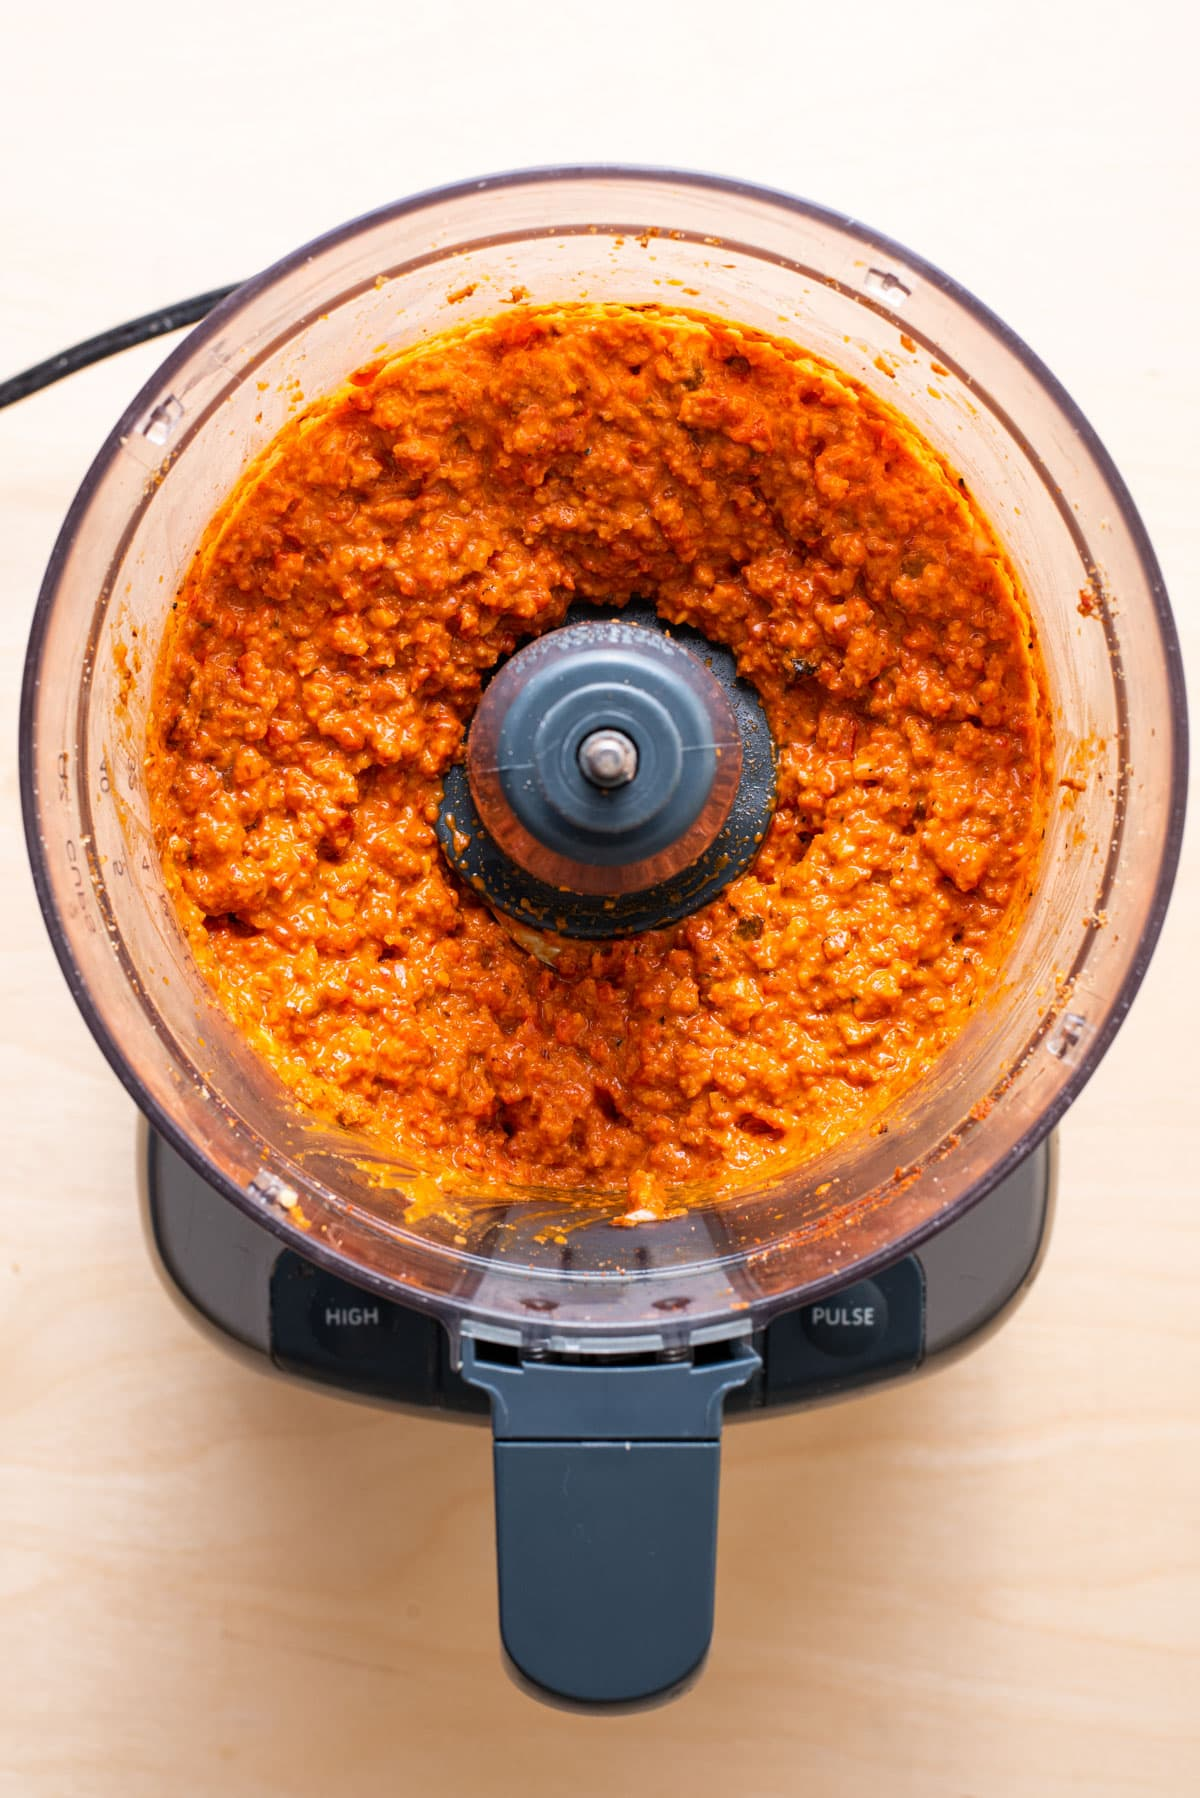 Homemade romesco sauce in a food processor.